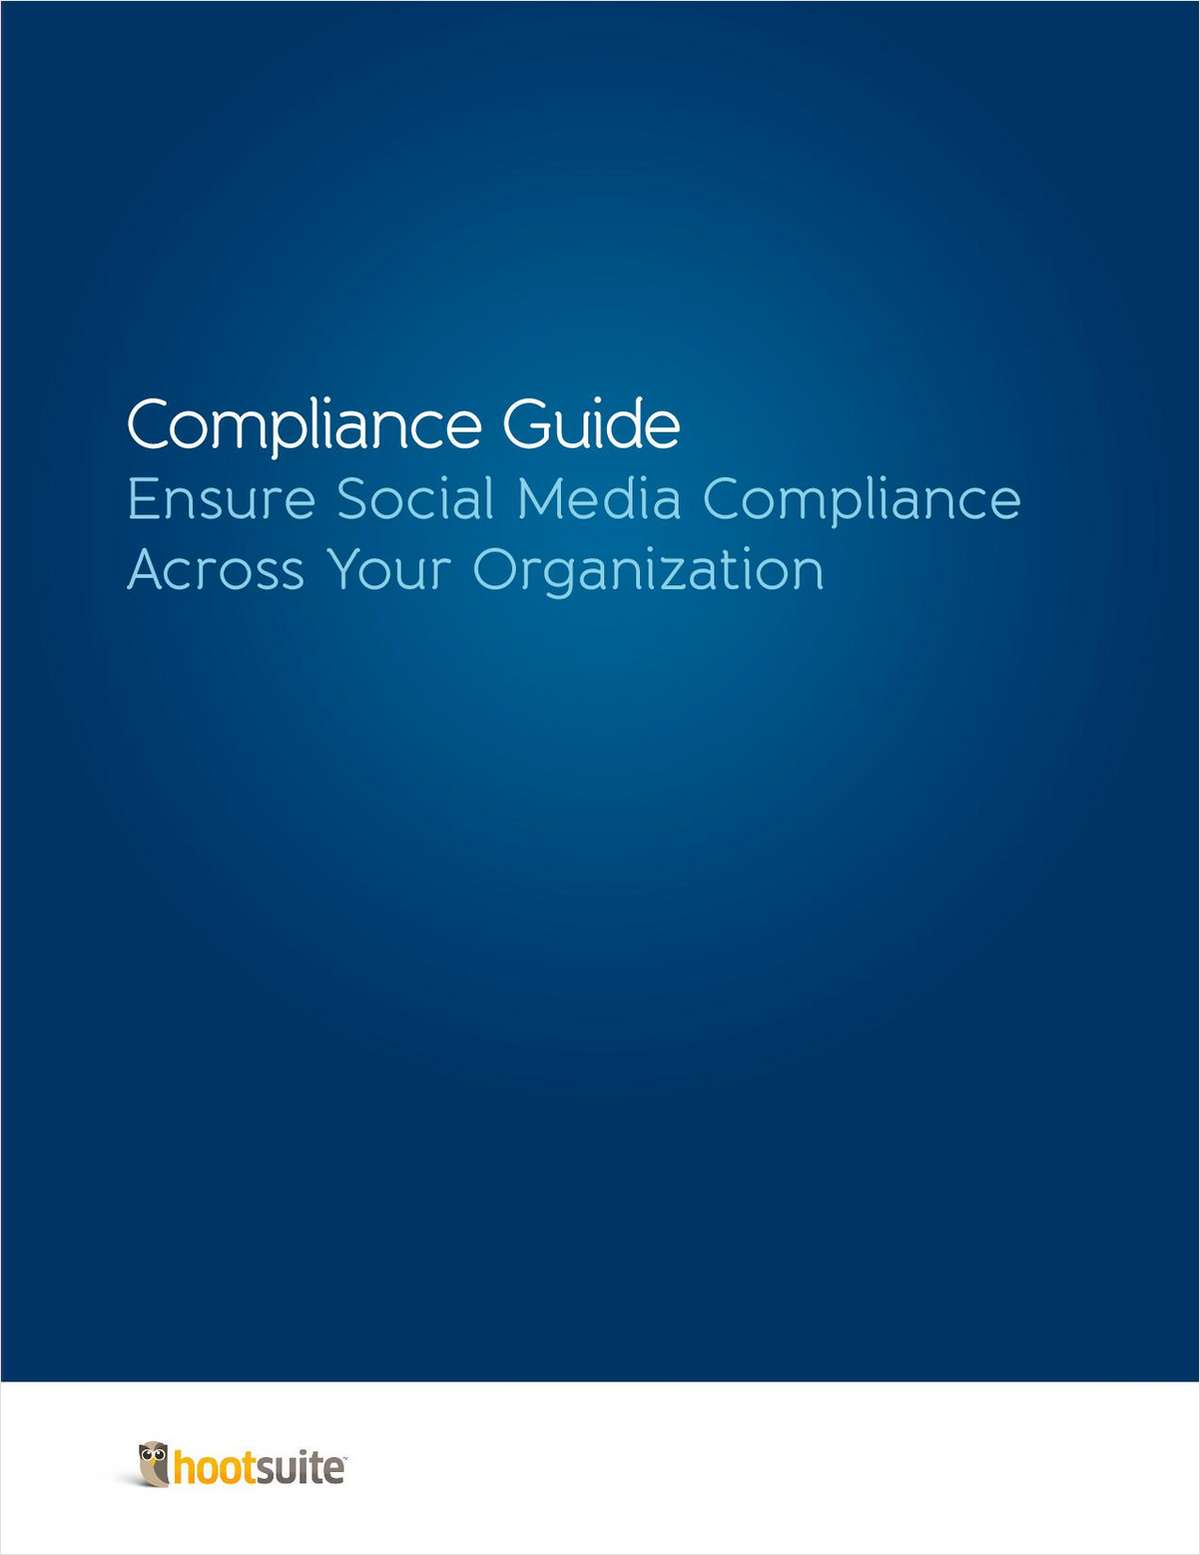 Compliance Guide: Ensure Social Media Compliance Across Your Organization